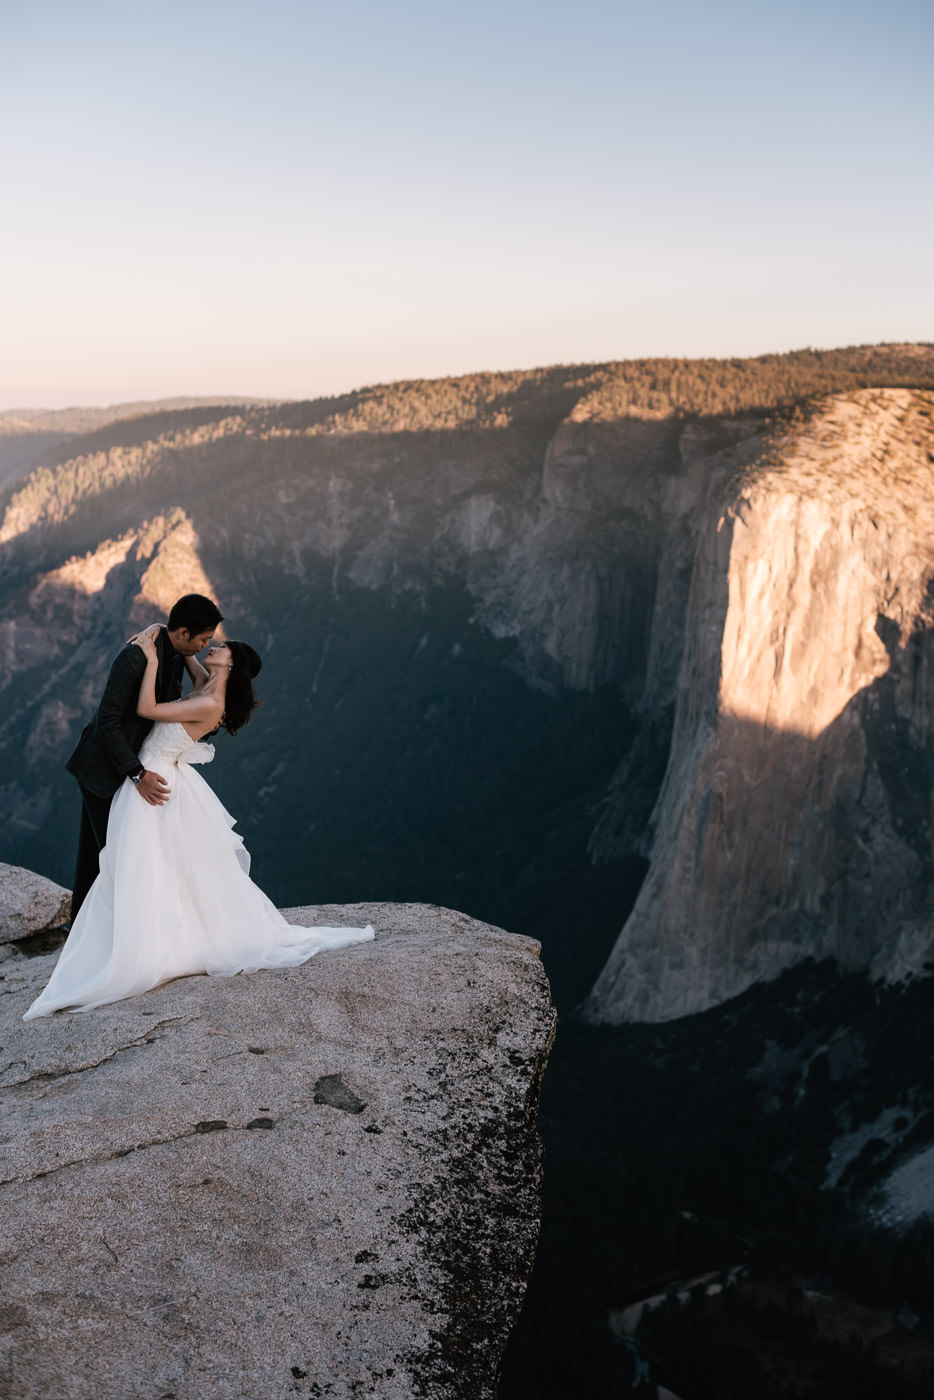 Couple kisses at Taft Point as the sun rises on El Capitan in the background.